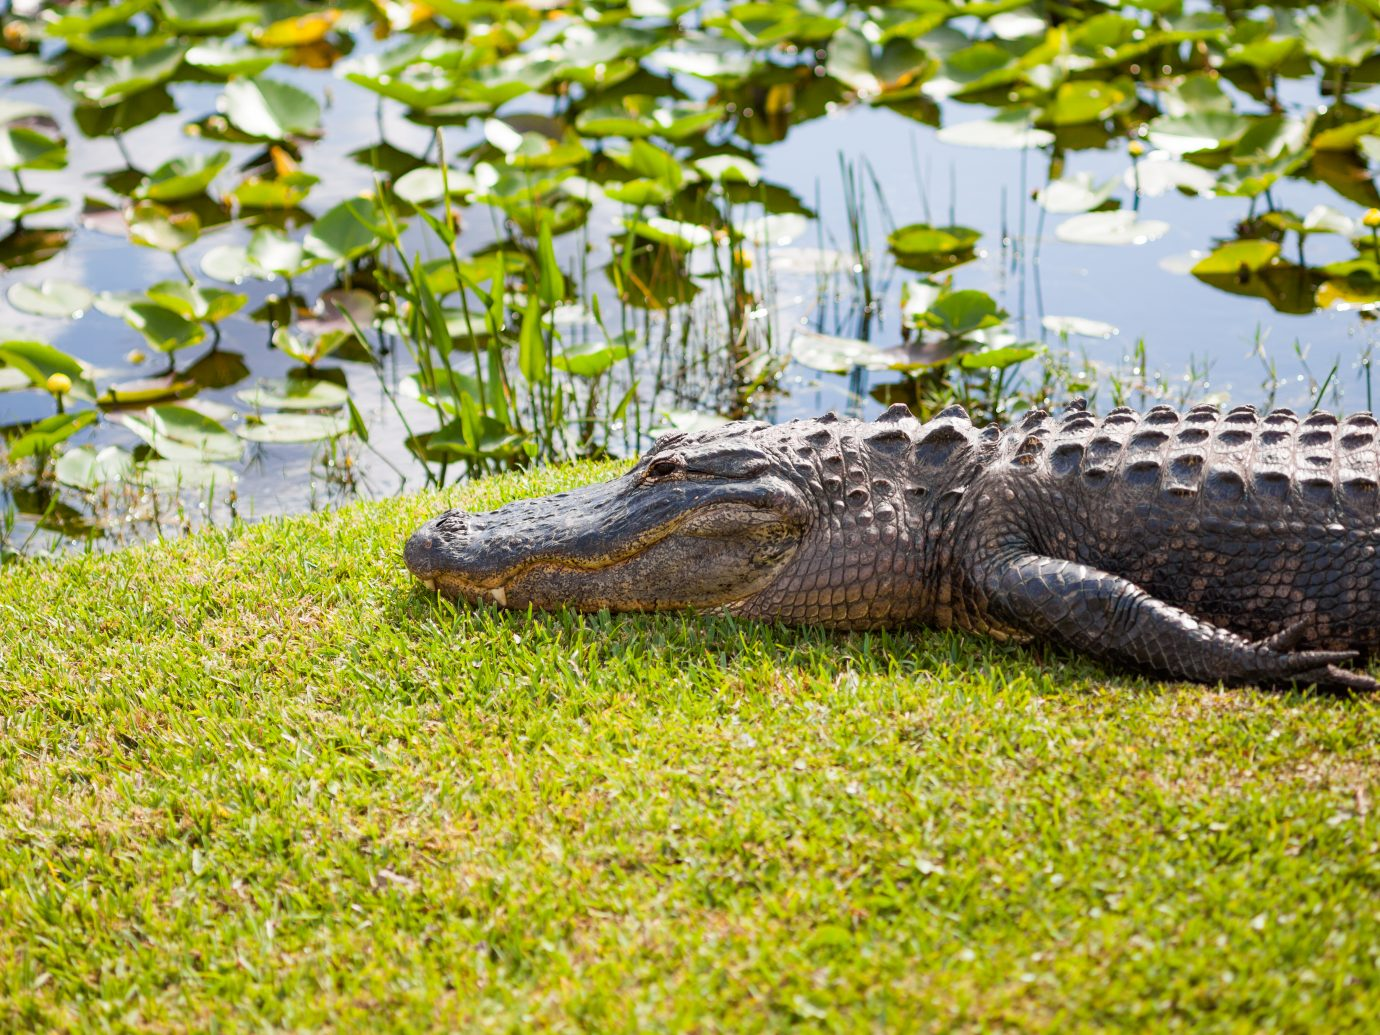 American alligator at the miccosukee's reserve (florida national park)